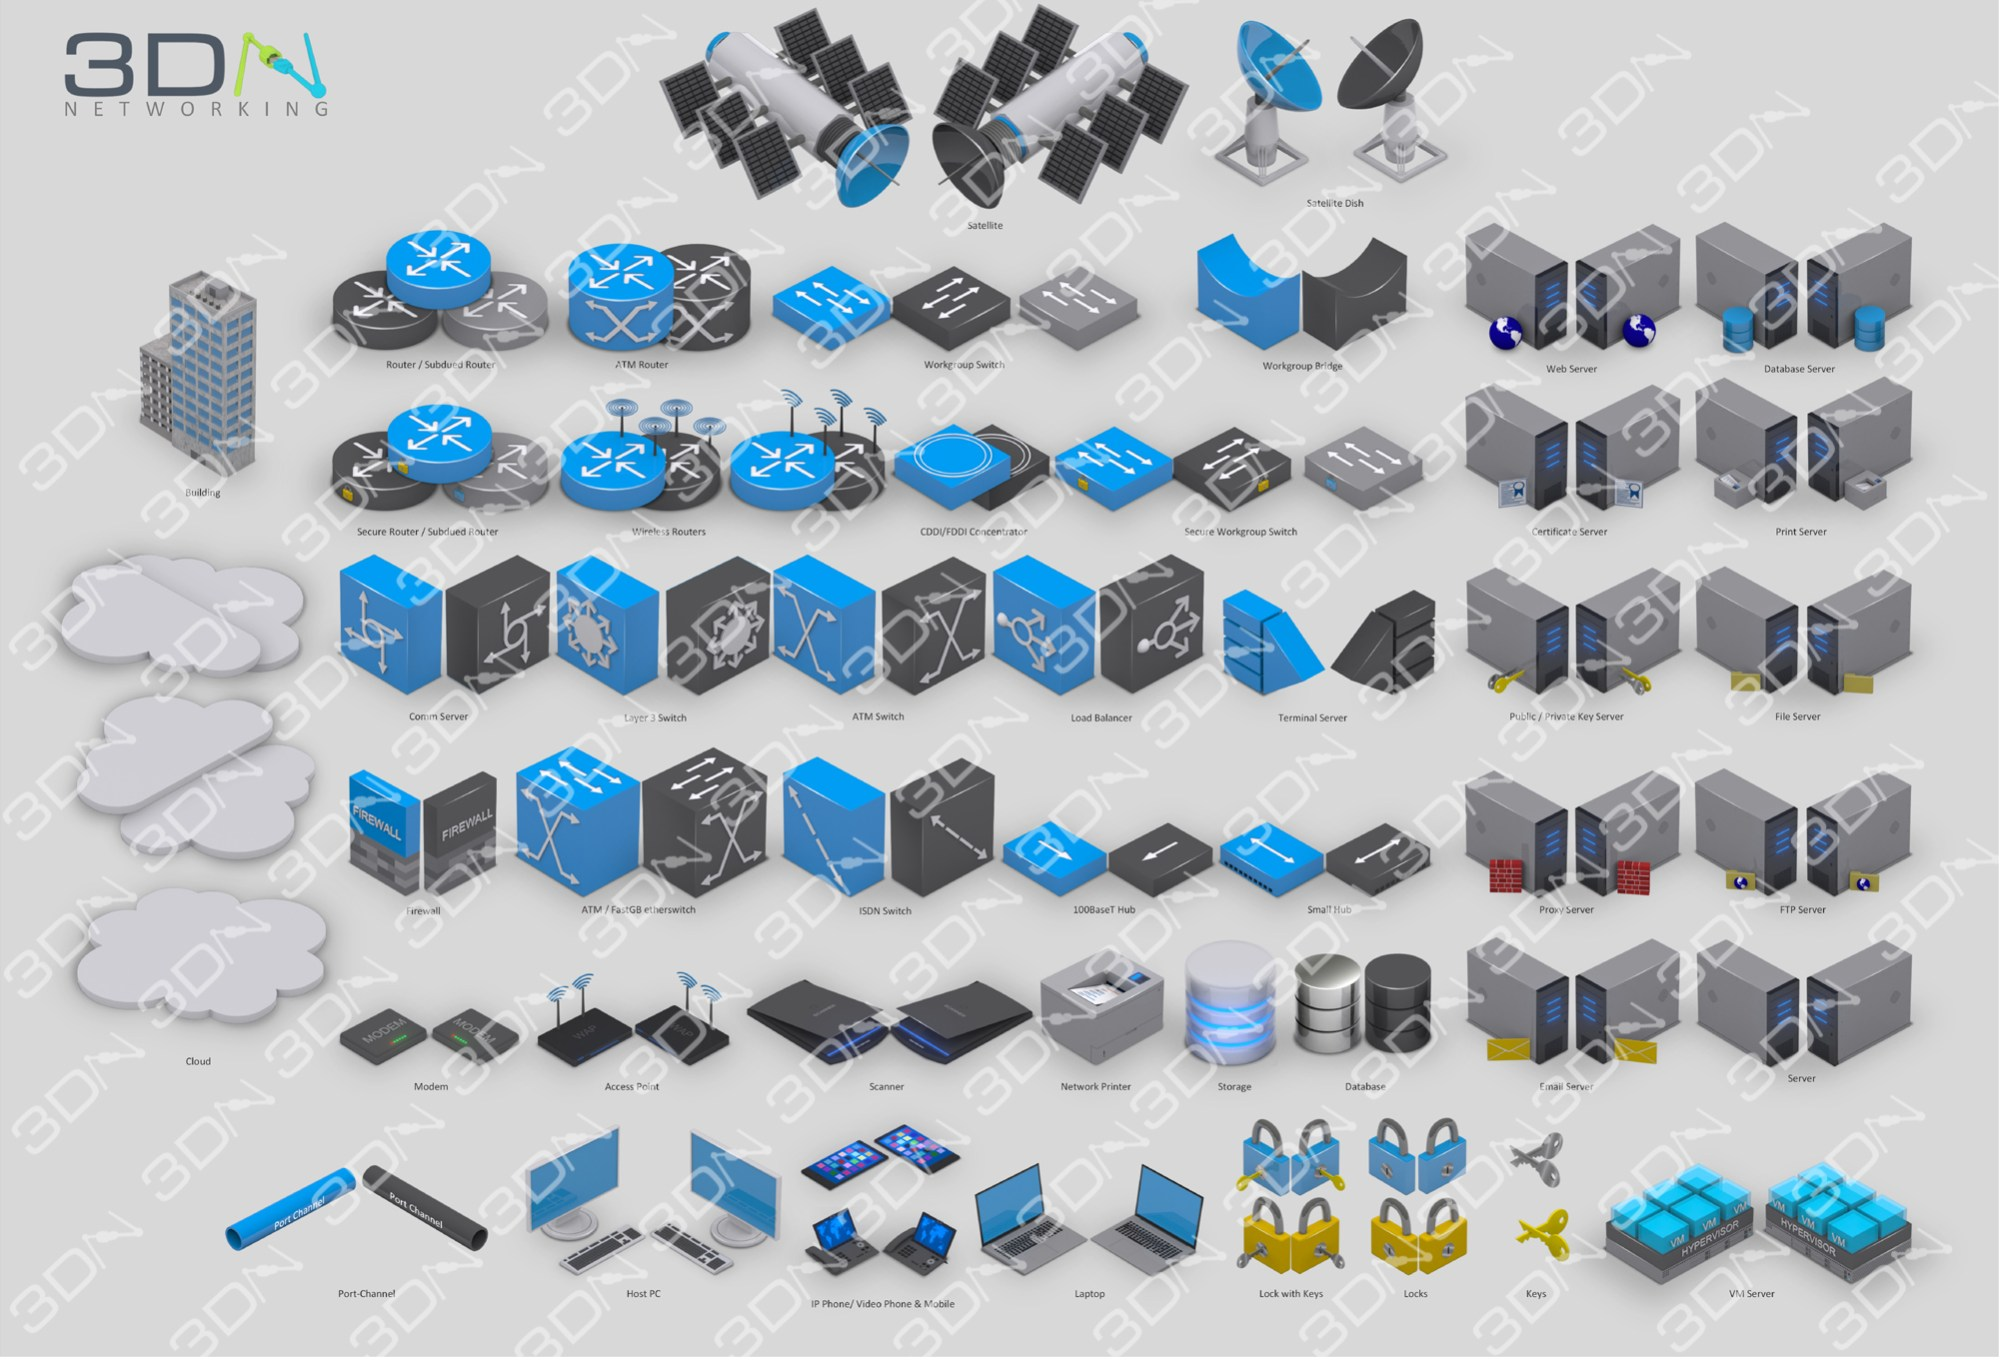 hight resolution of 3d symbols 3d networking switch network diagram icons 3d network diagram icons